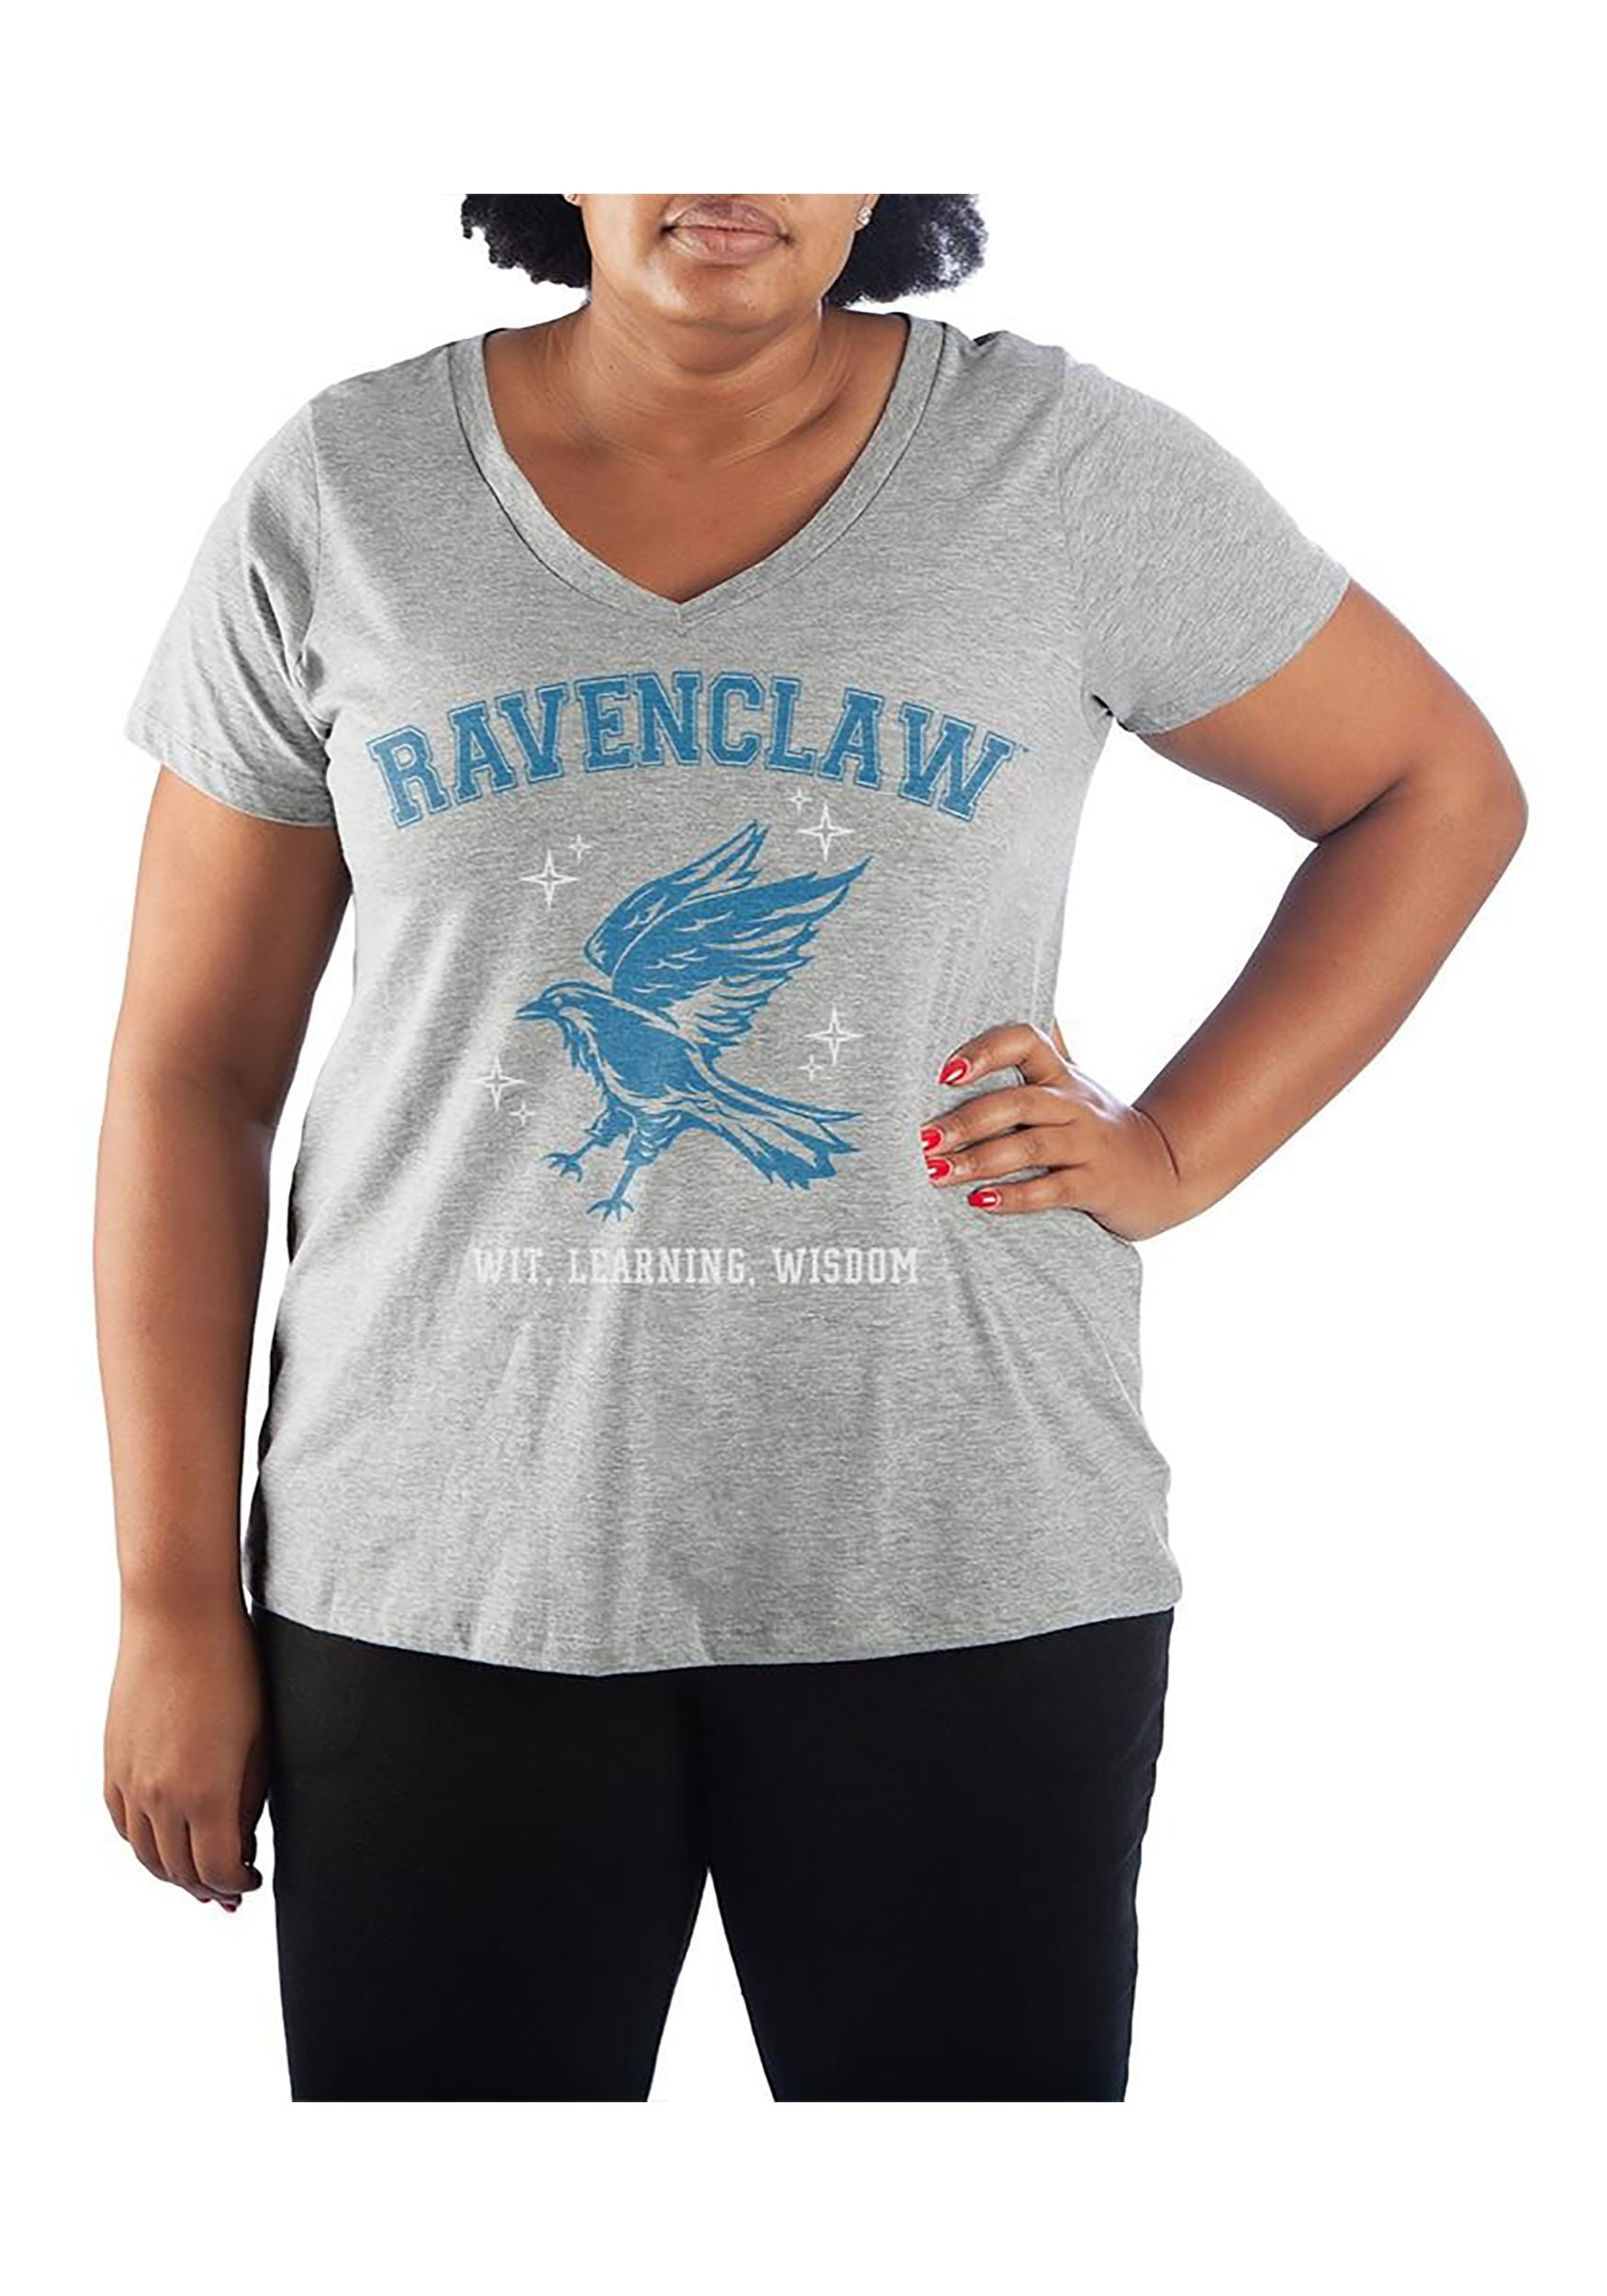 Ravenclaw Plus Size V-neck Tee for Women